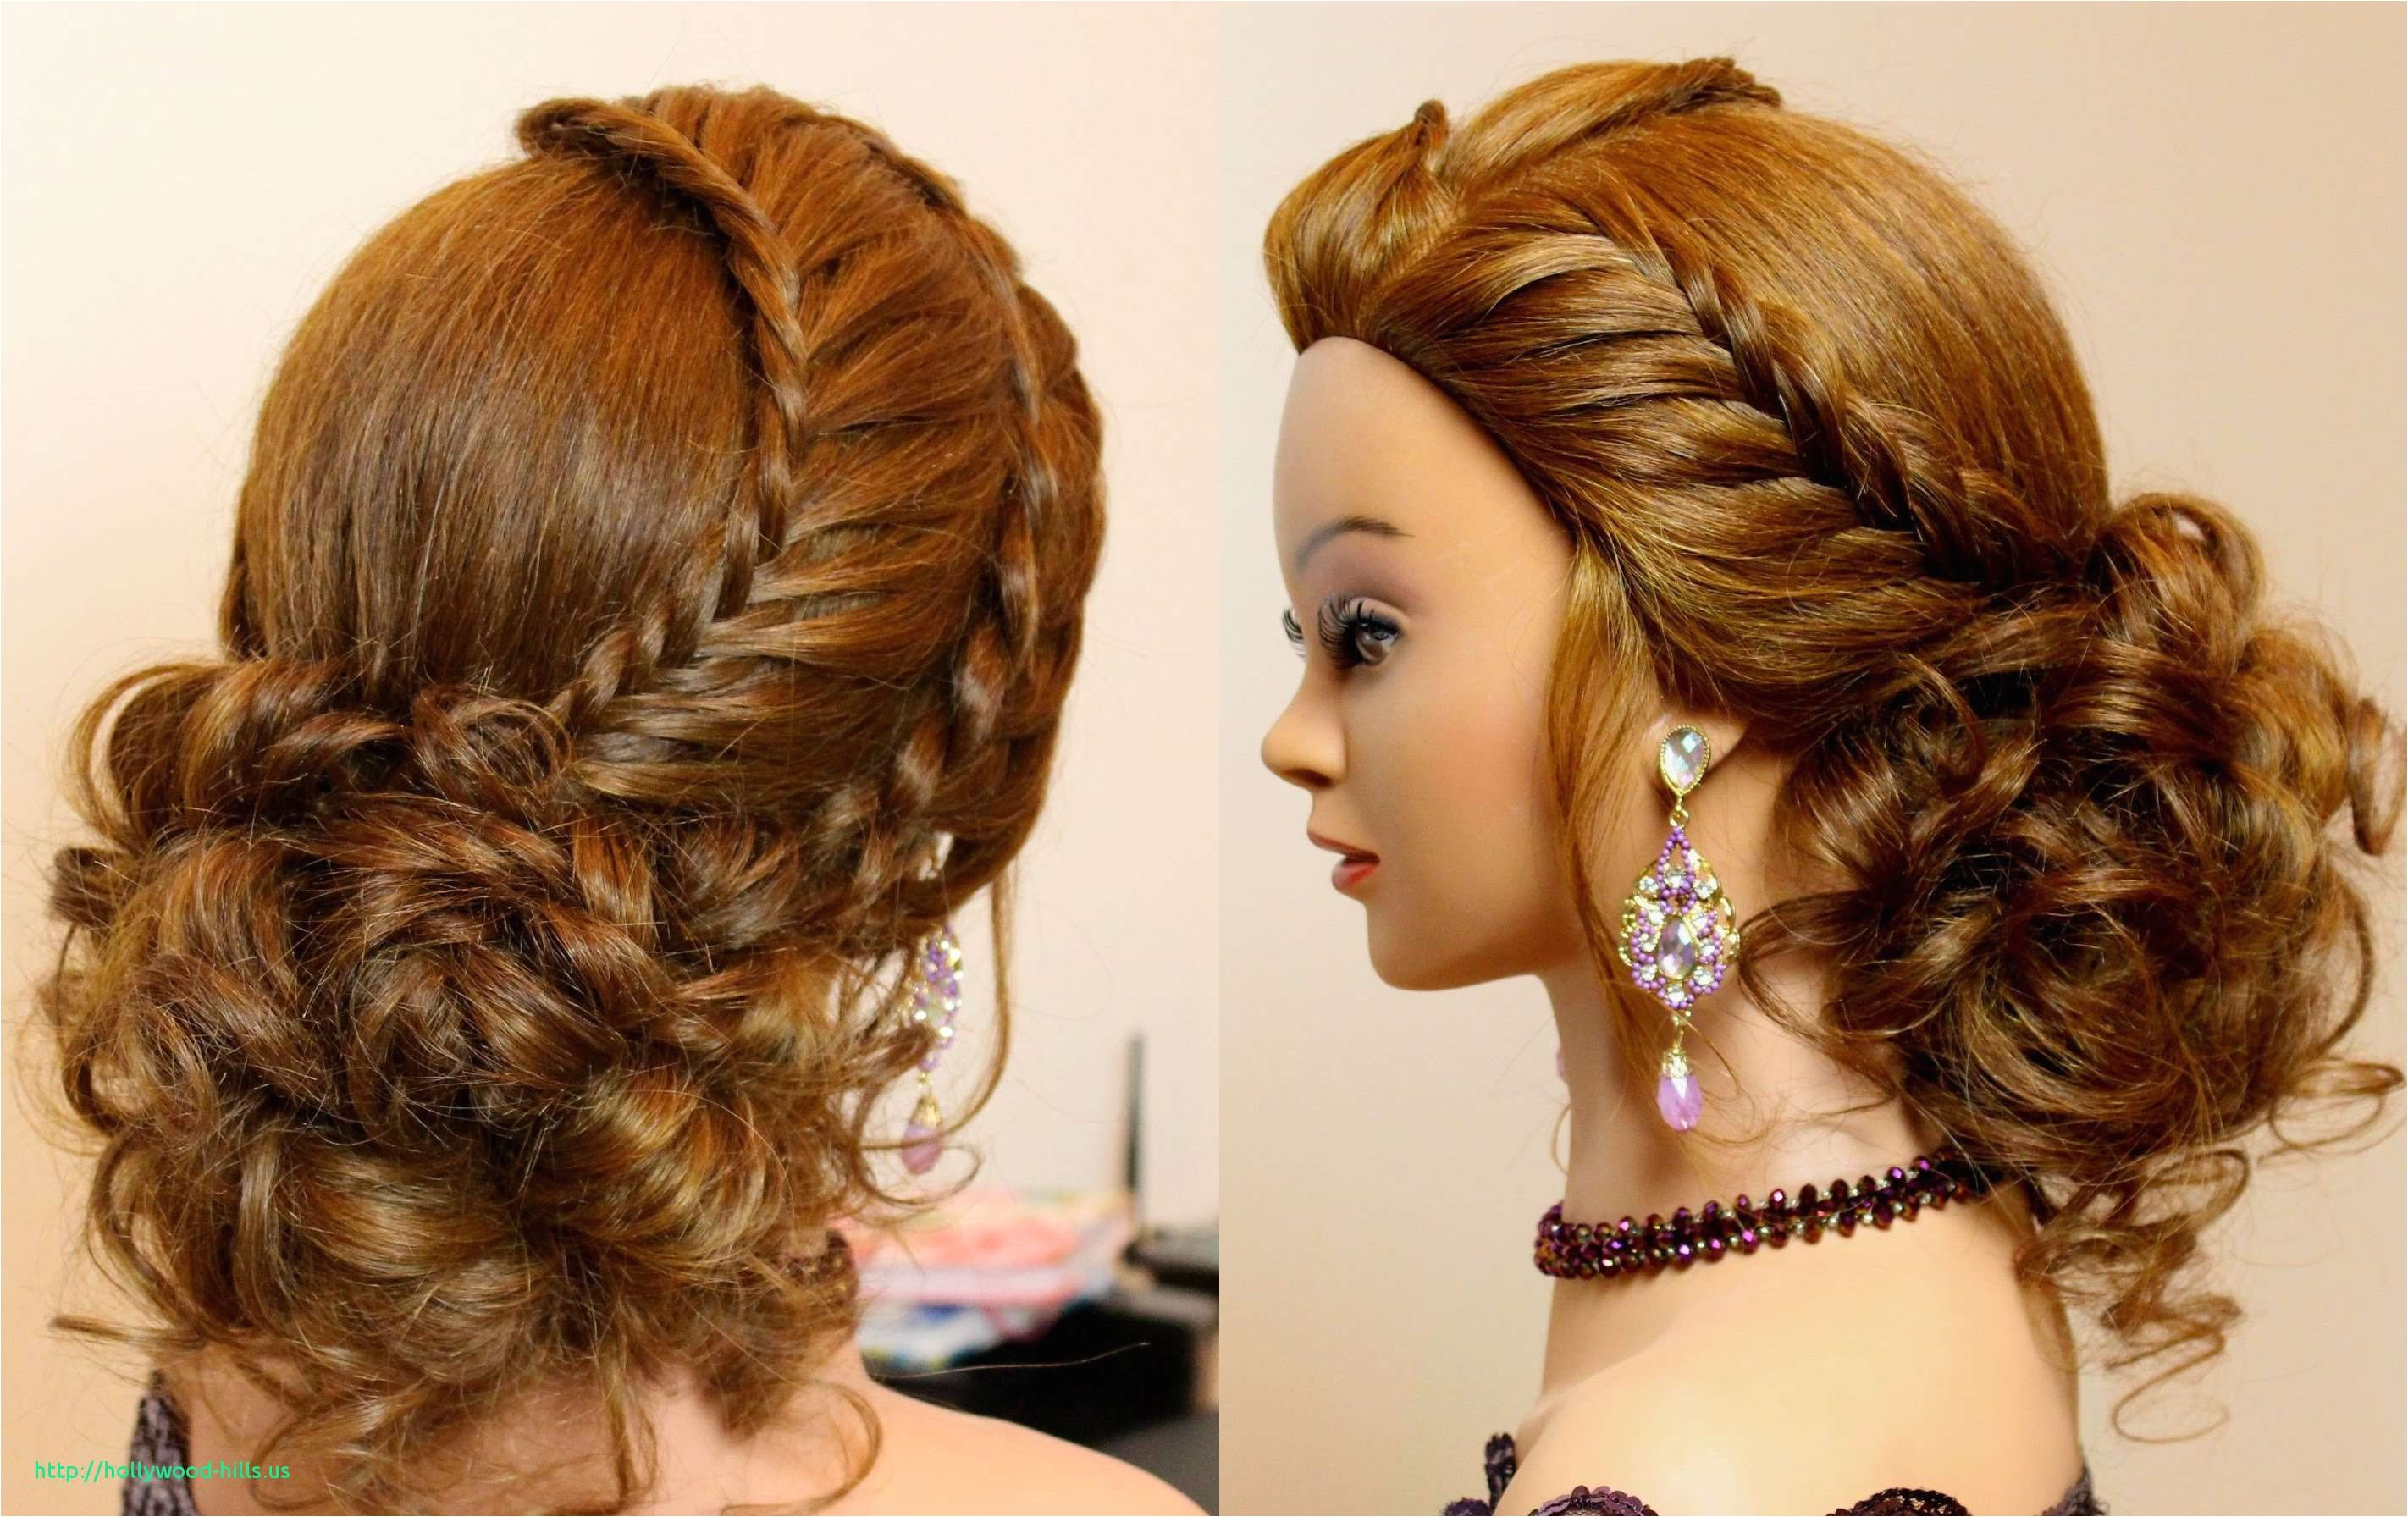 Hairstyles for Medium Wavy Hair Elegant 80s Prom Hairstyles New these 80s Hair Trends are Back